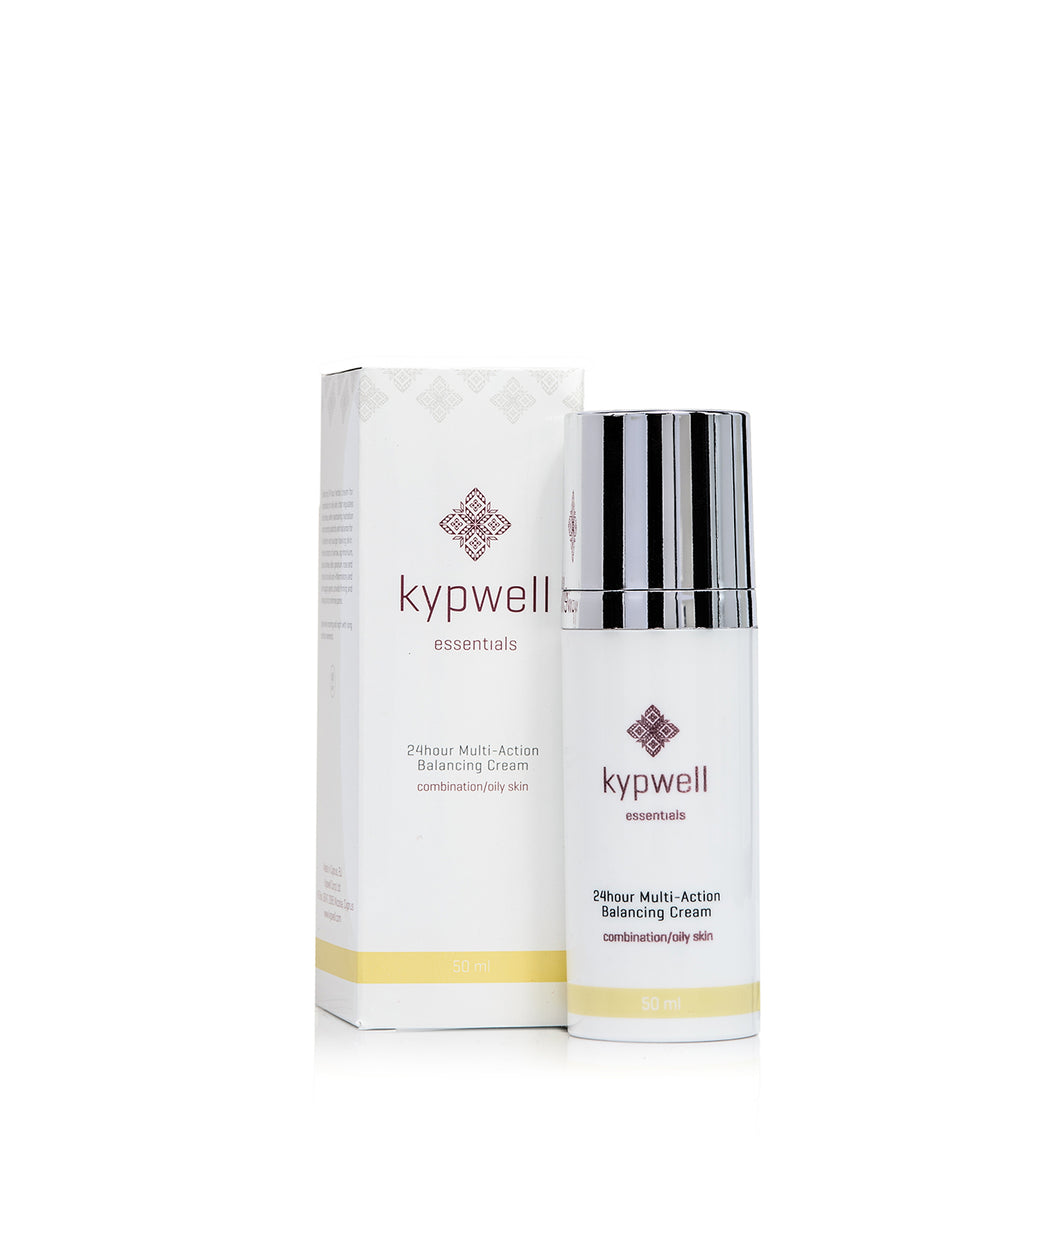 Kypwell 24 Hour Multi Action Balancing Cream - 50ml